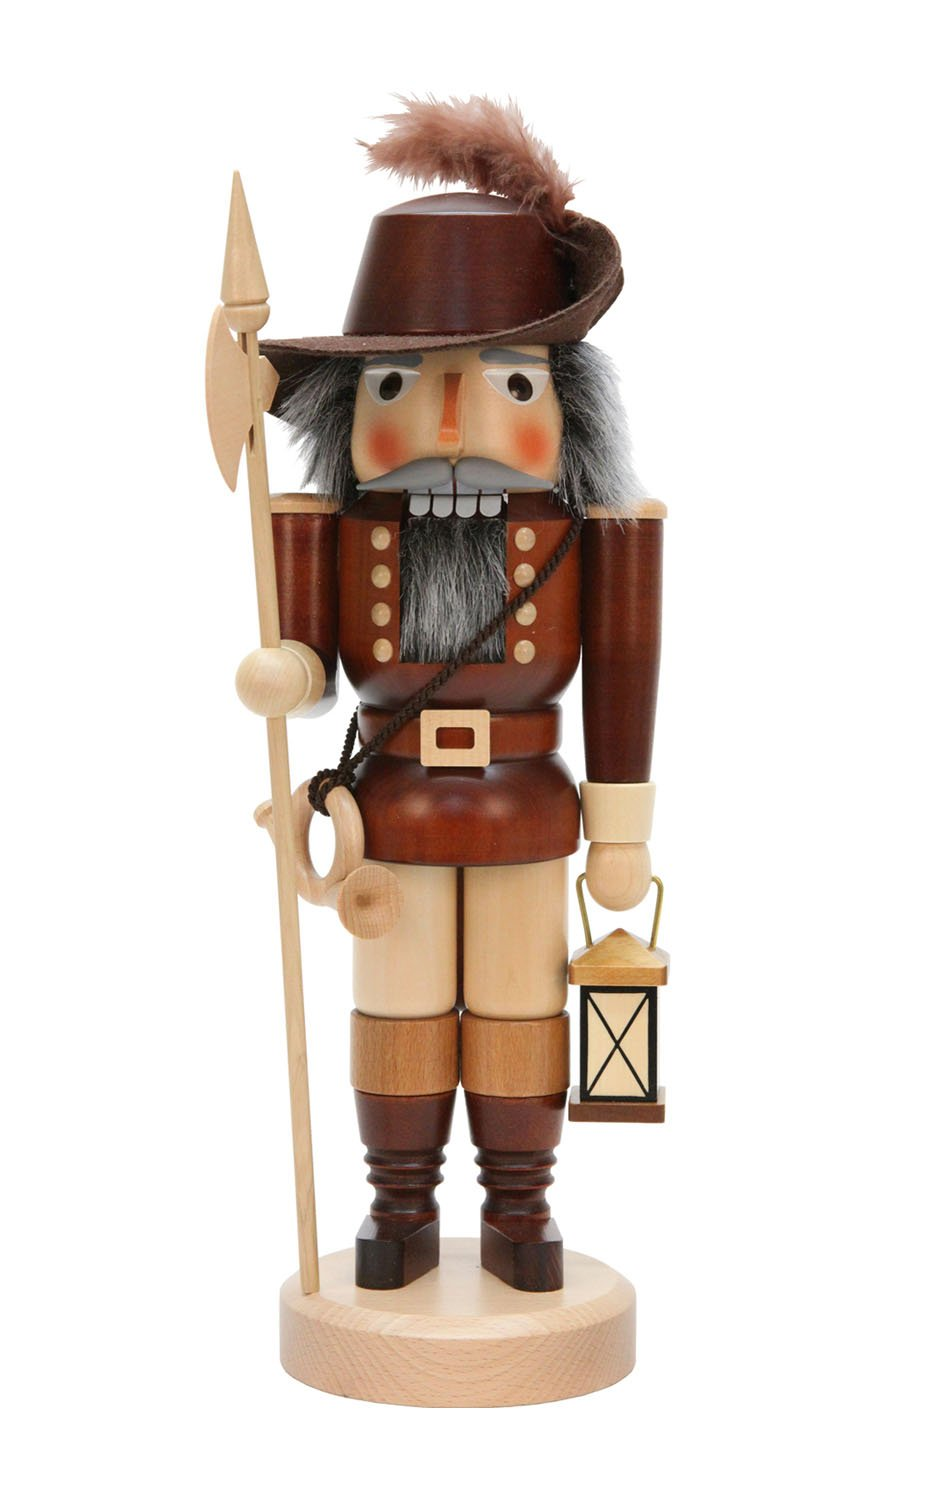 Alexander Taron Christian Ulbricht Decorative Nightwatcher Nutcracker - Natural